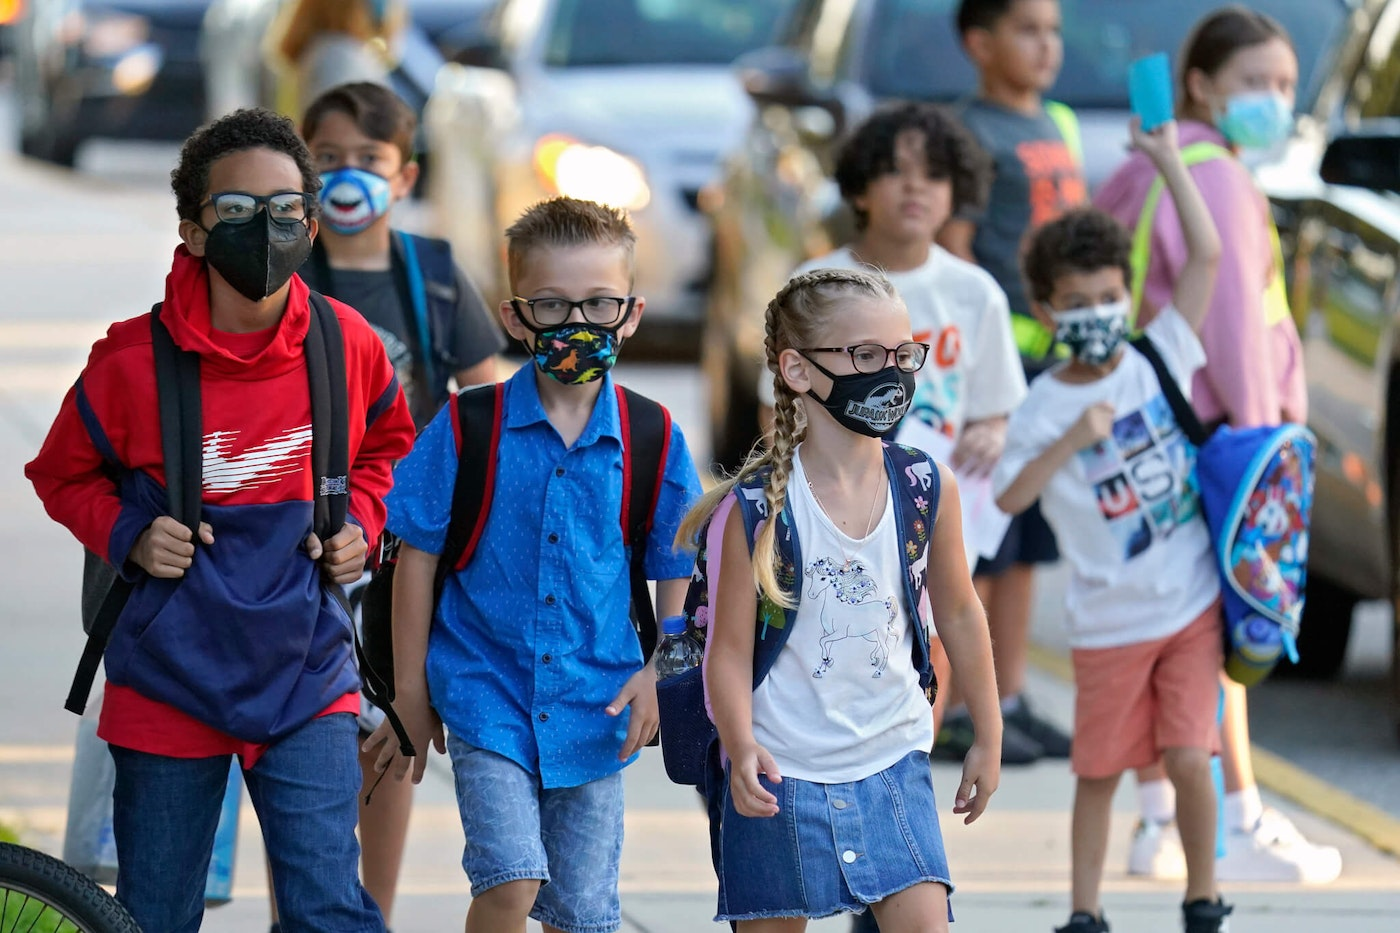 Students, some wearing protective masks, arrive for the first day of school at a Florida elementary school. (AP Photo/Chris O'Meara, File)